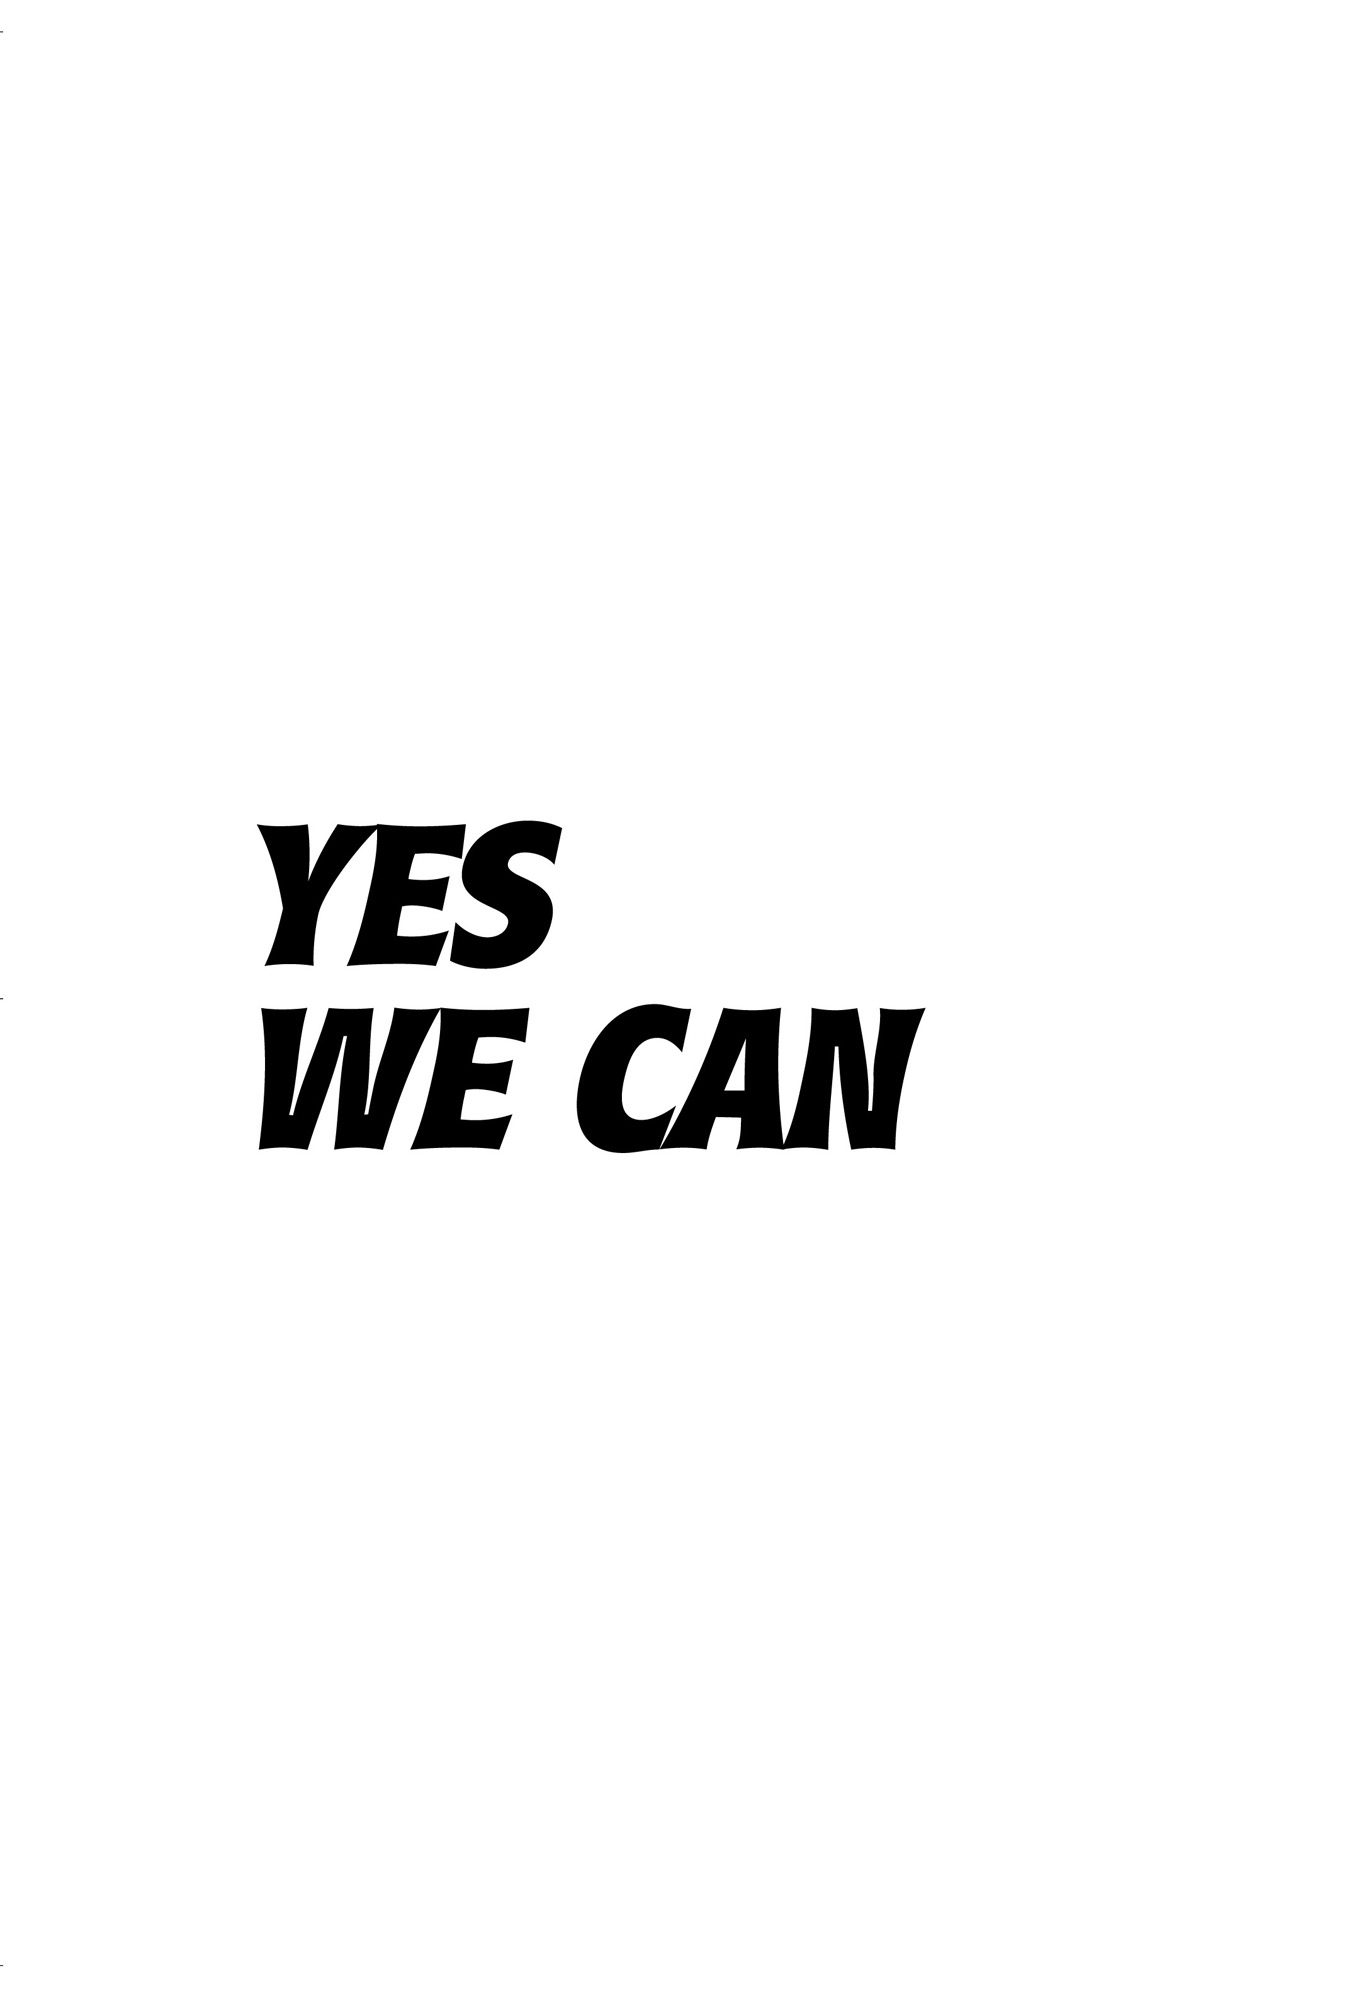 Yes we can - Galerie Georges-Philippe & Nathalie Vallois